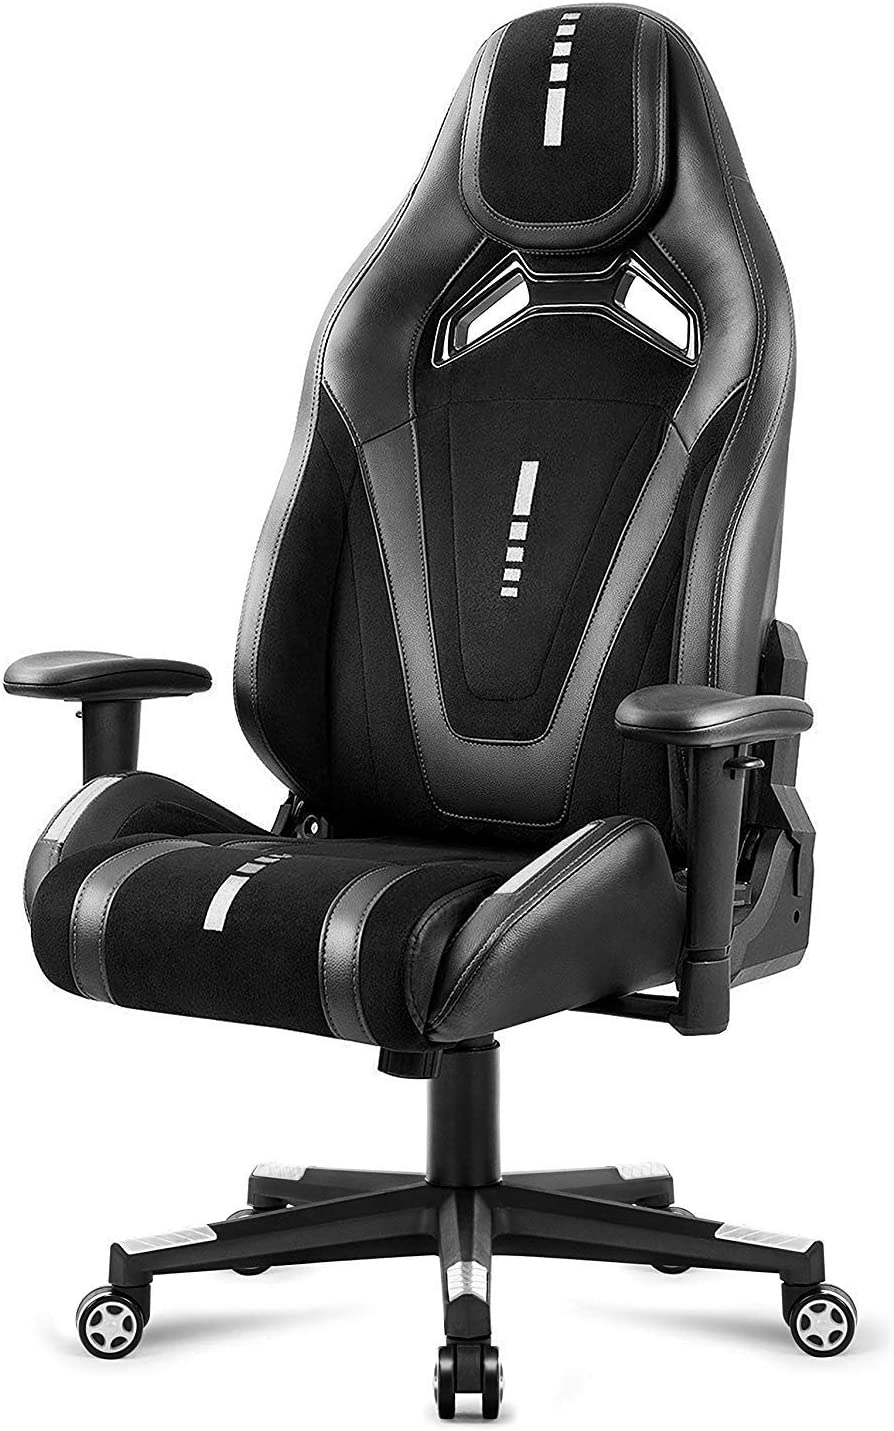 Black Suede Fabric Racing Gaming Chair,